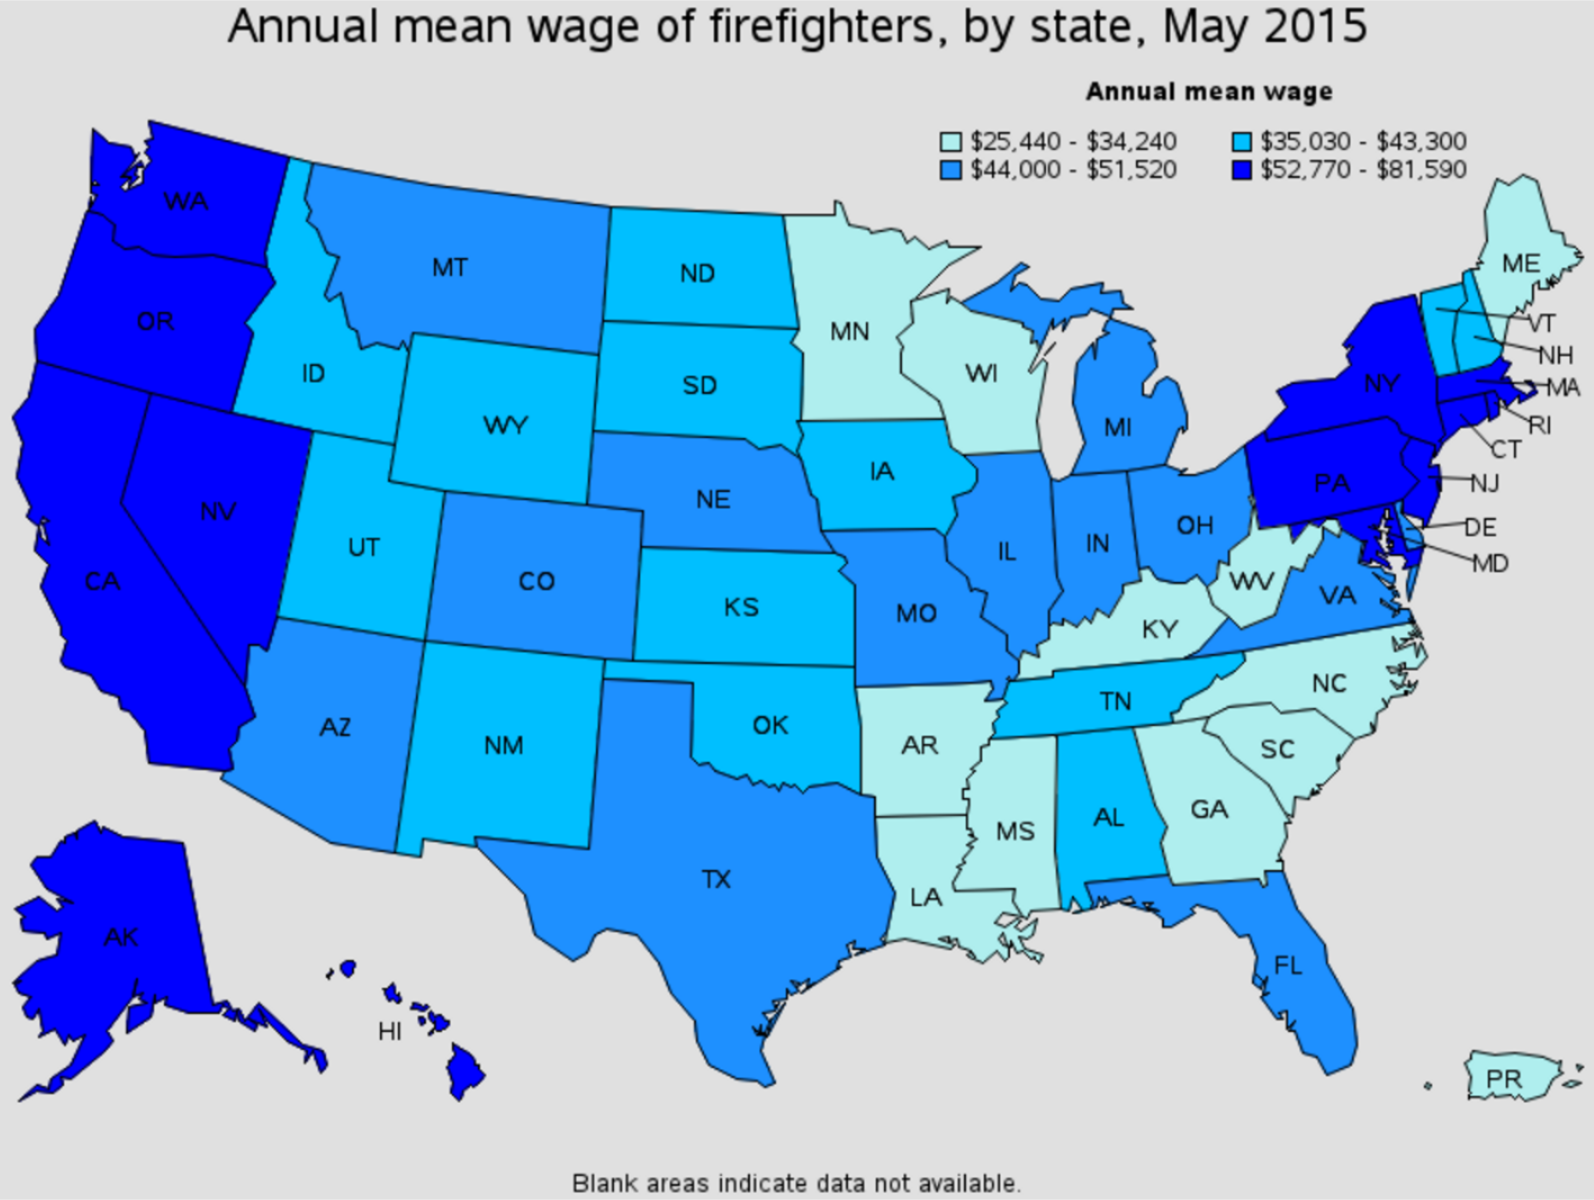 firefighter average salary by state Wadley Alabama